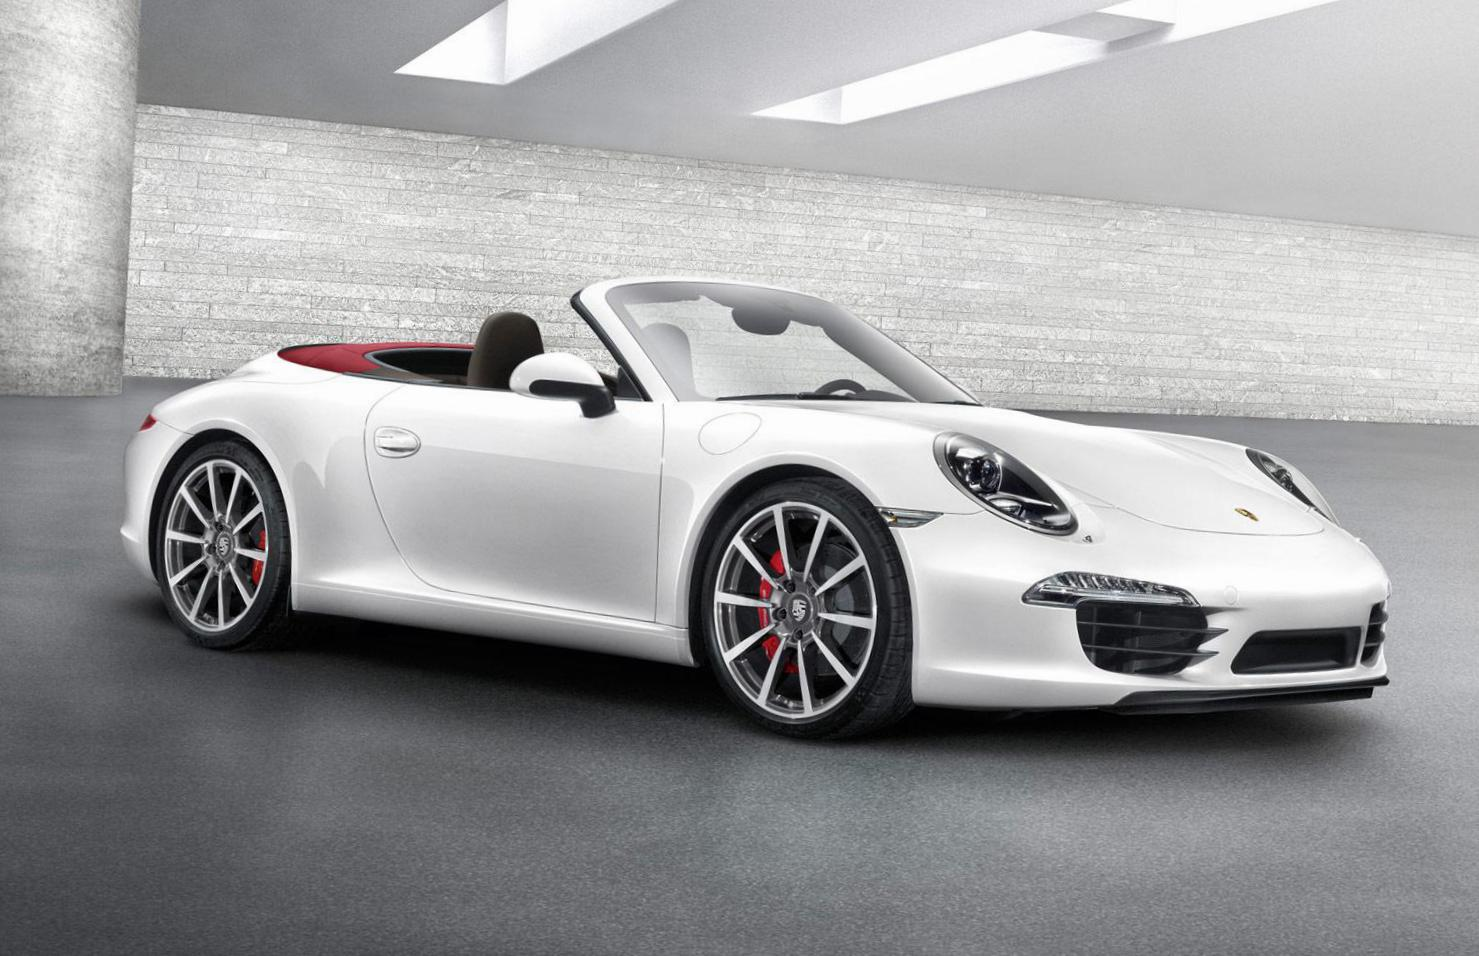 Porsche 911 Carrera Cabriolet approved 2007